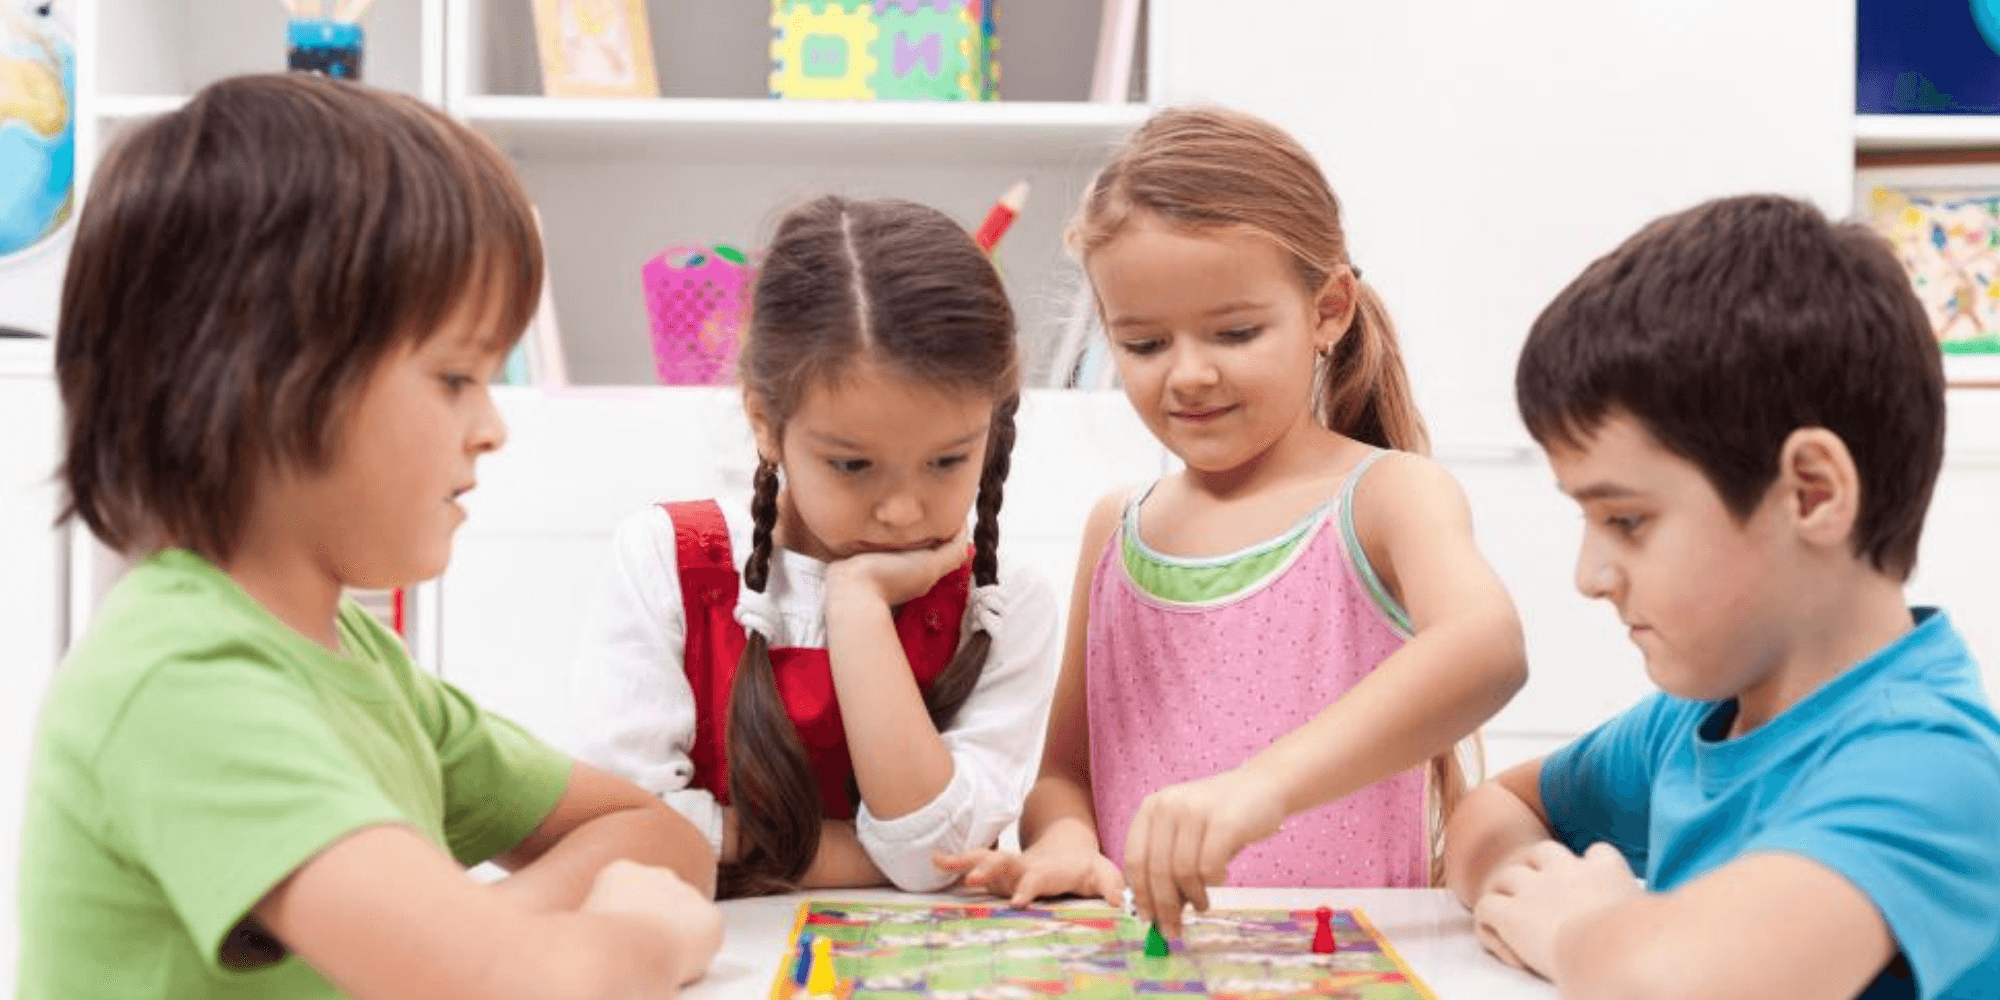 children playing board games